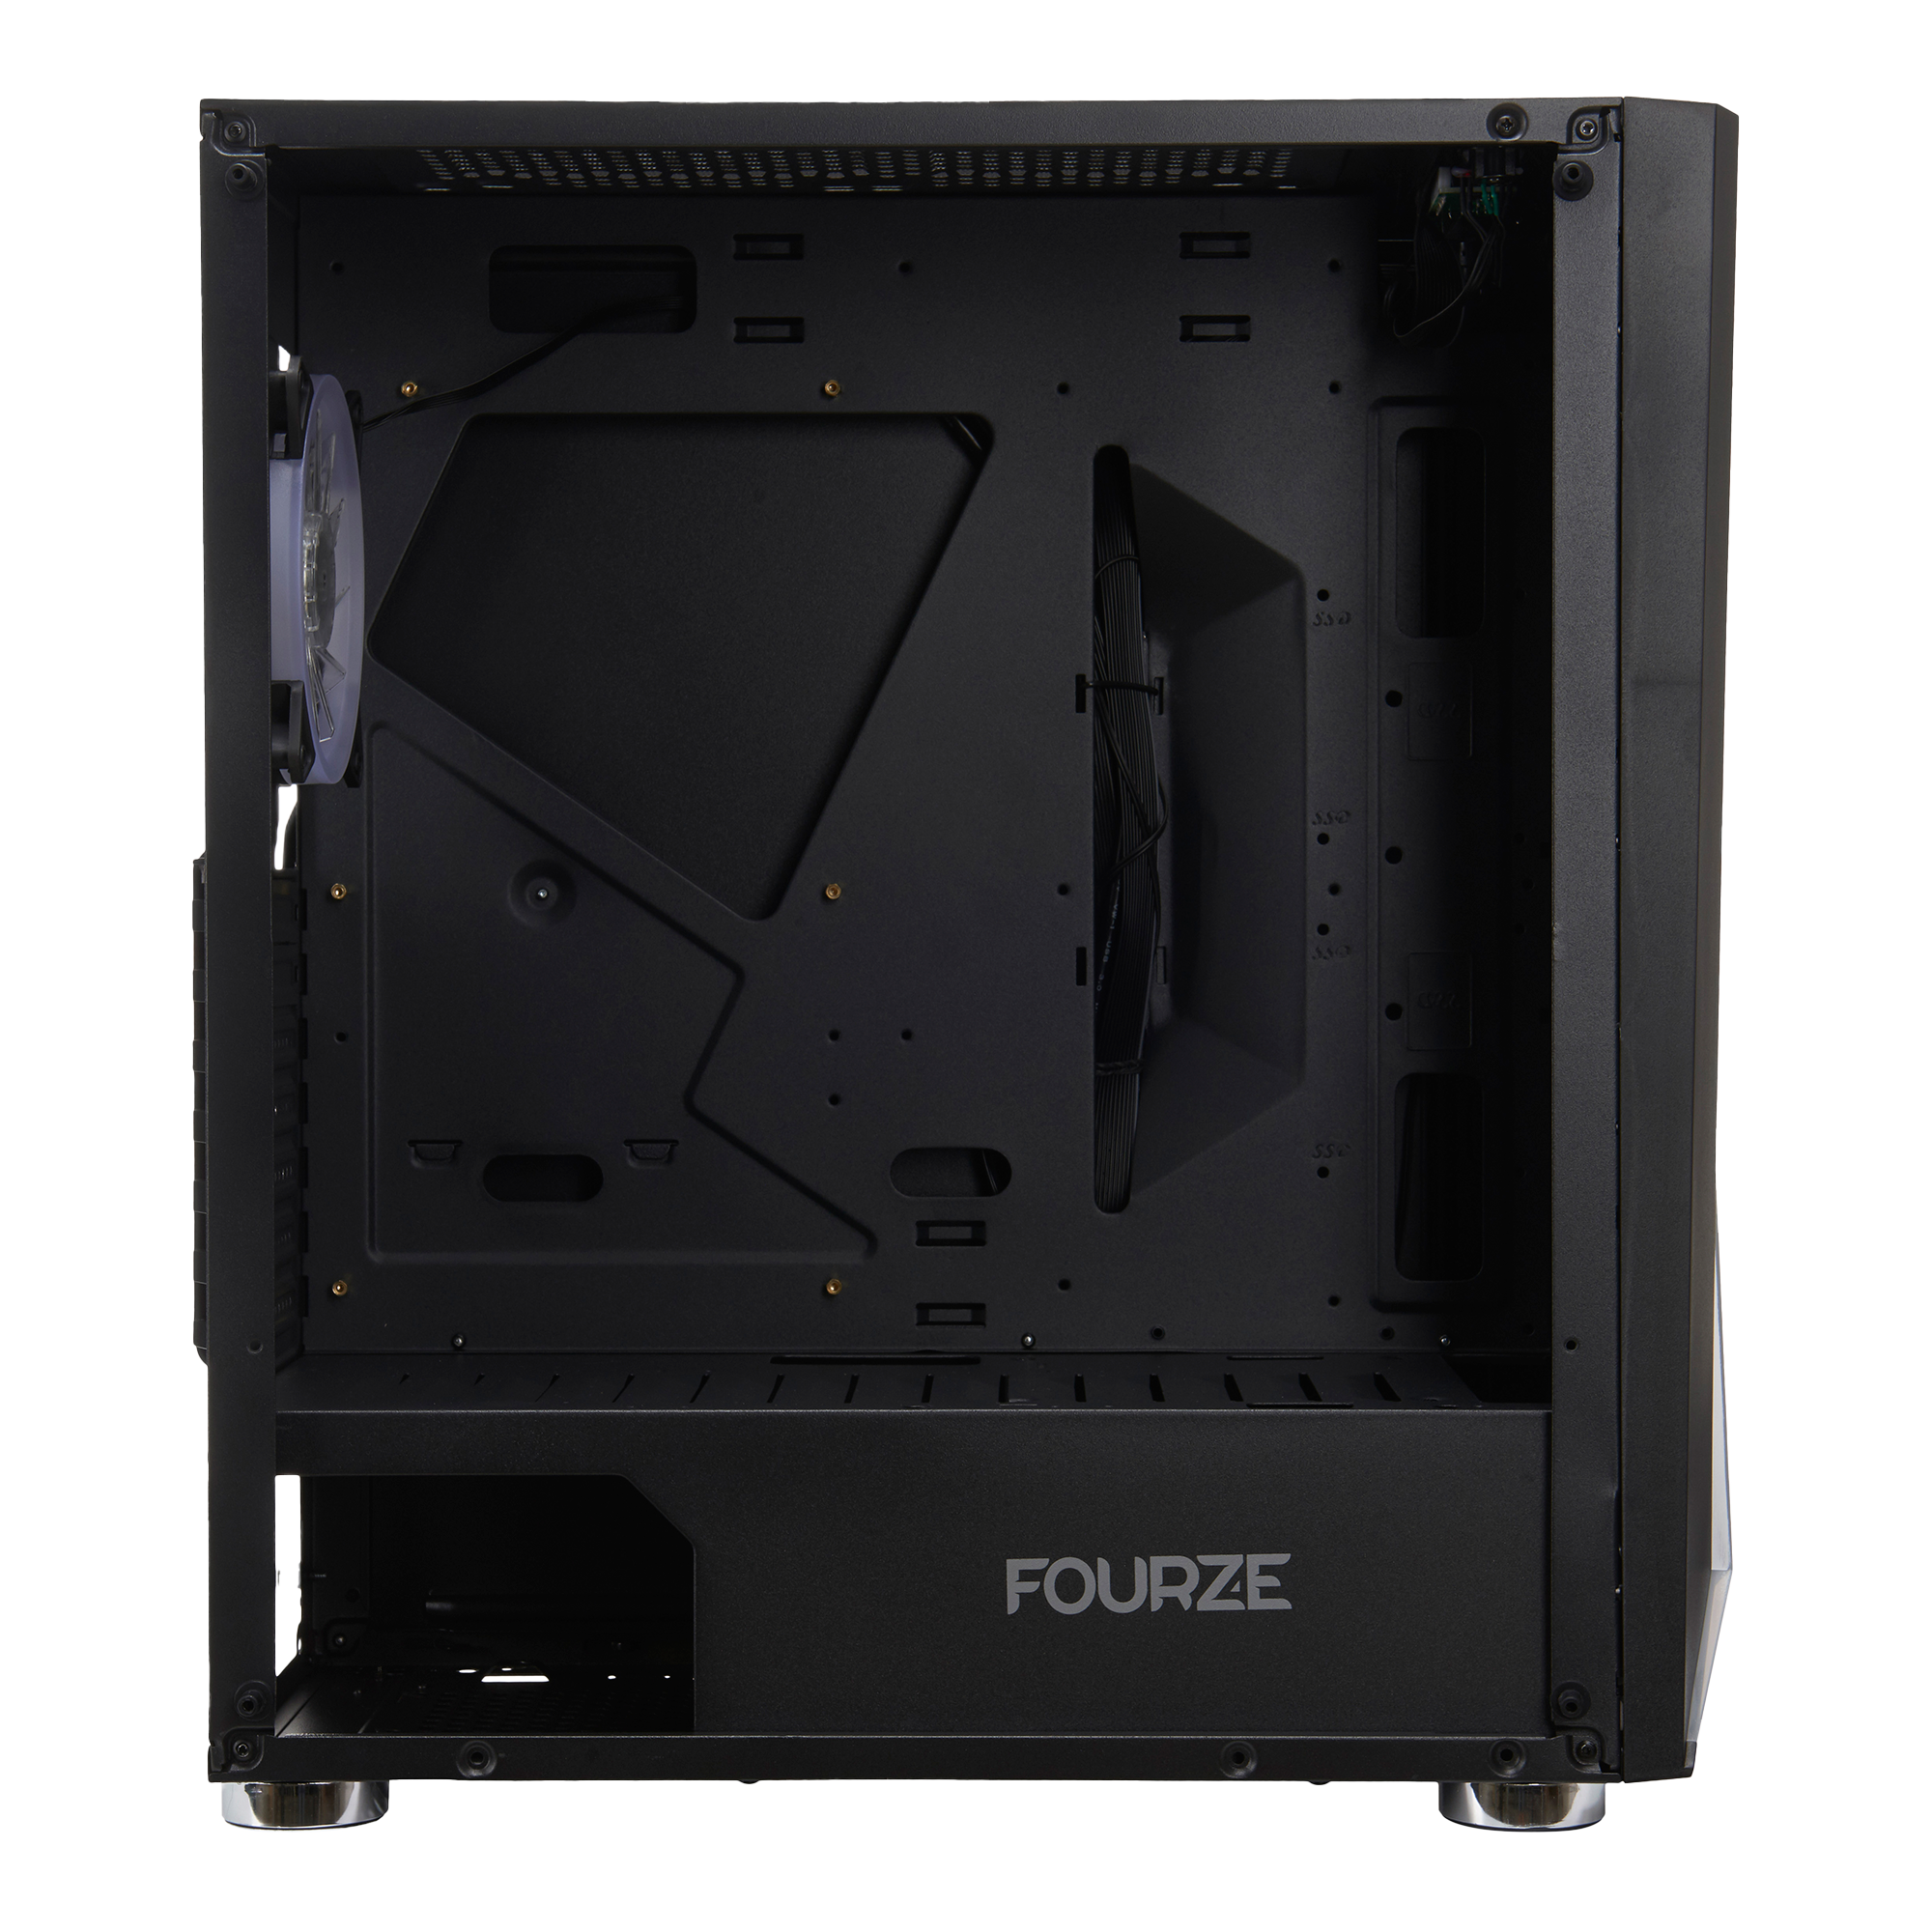 FOURZE T450 RGB Gaming Case, seen from the side. Shows the inside of the T450 gaming case.